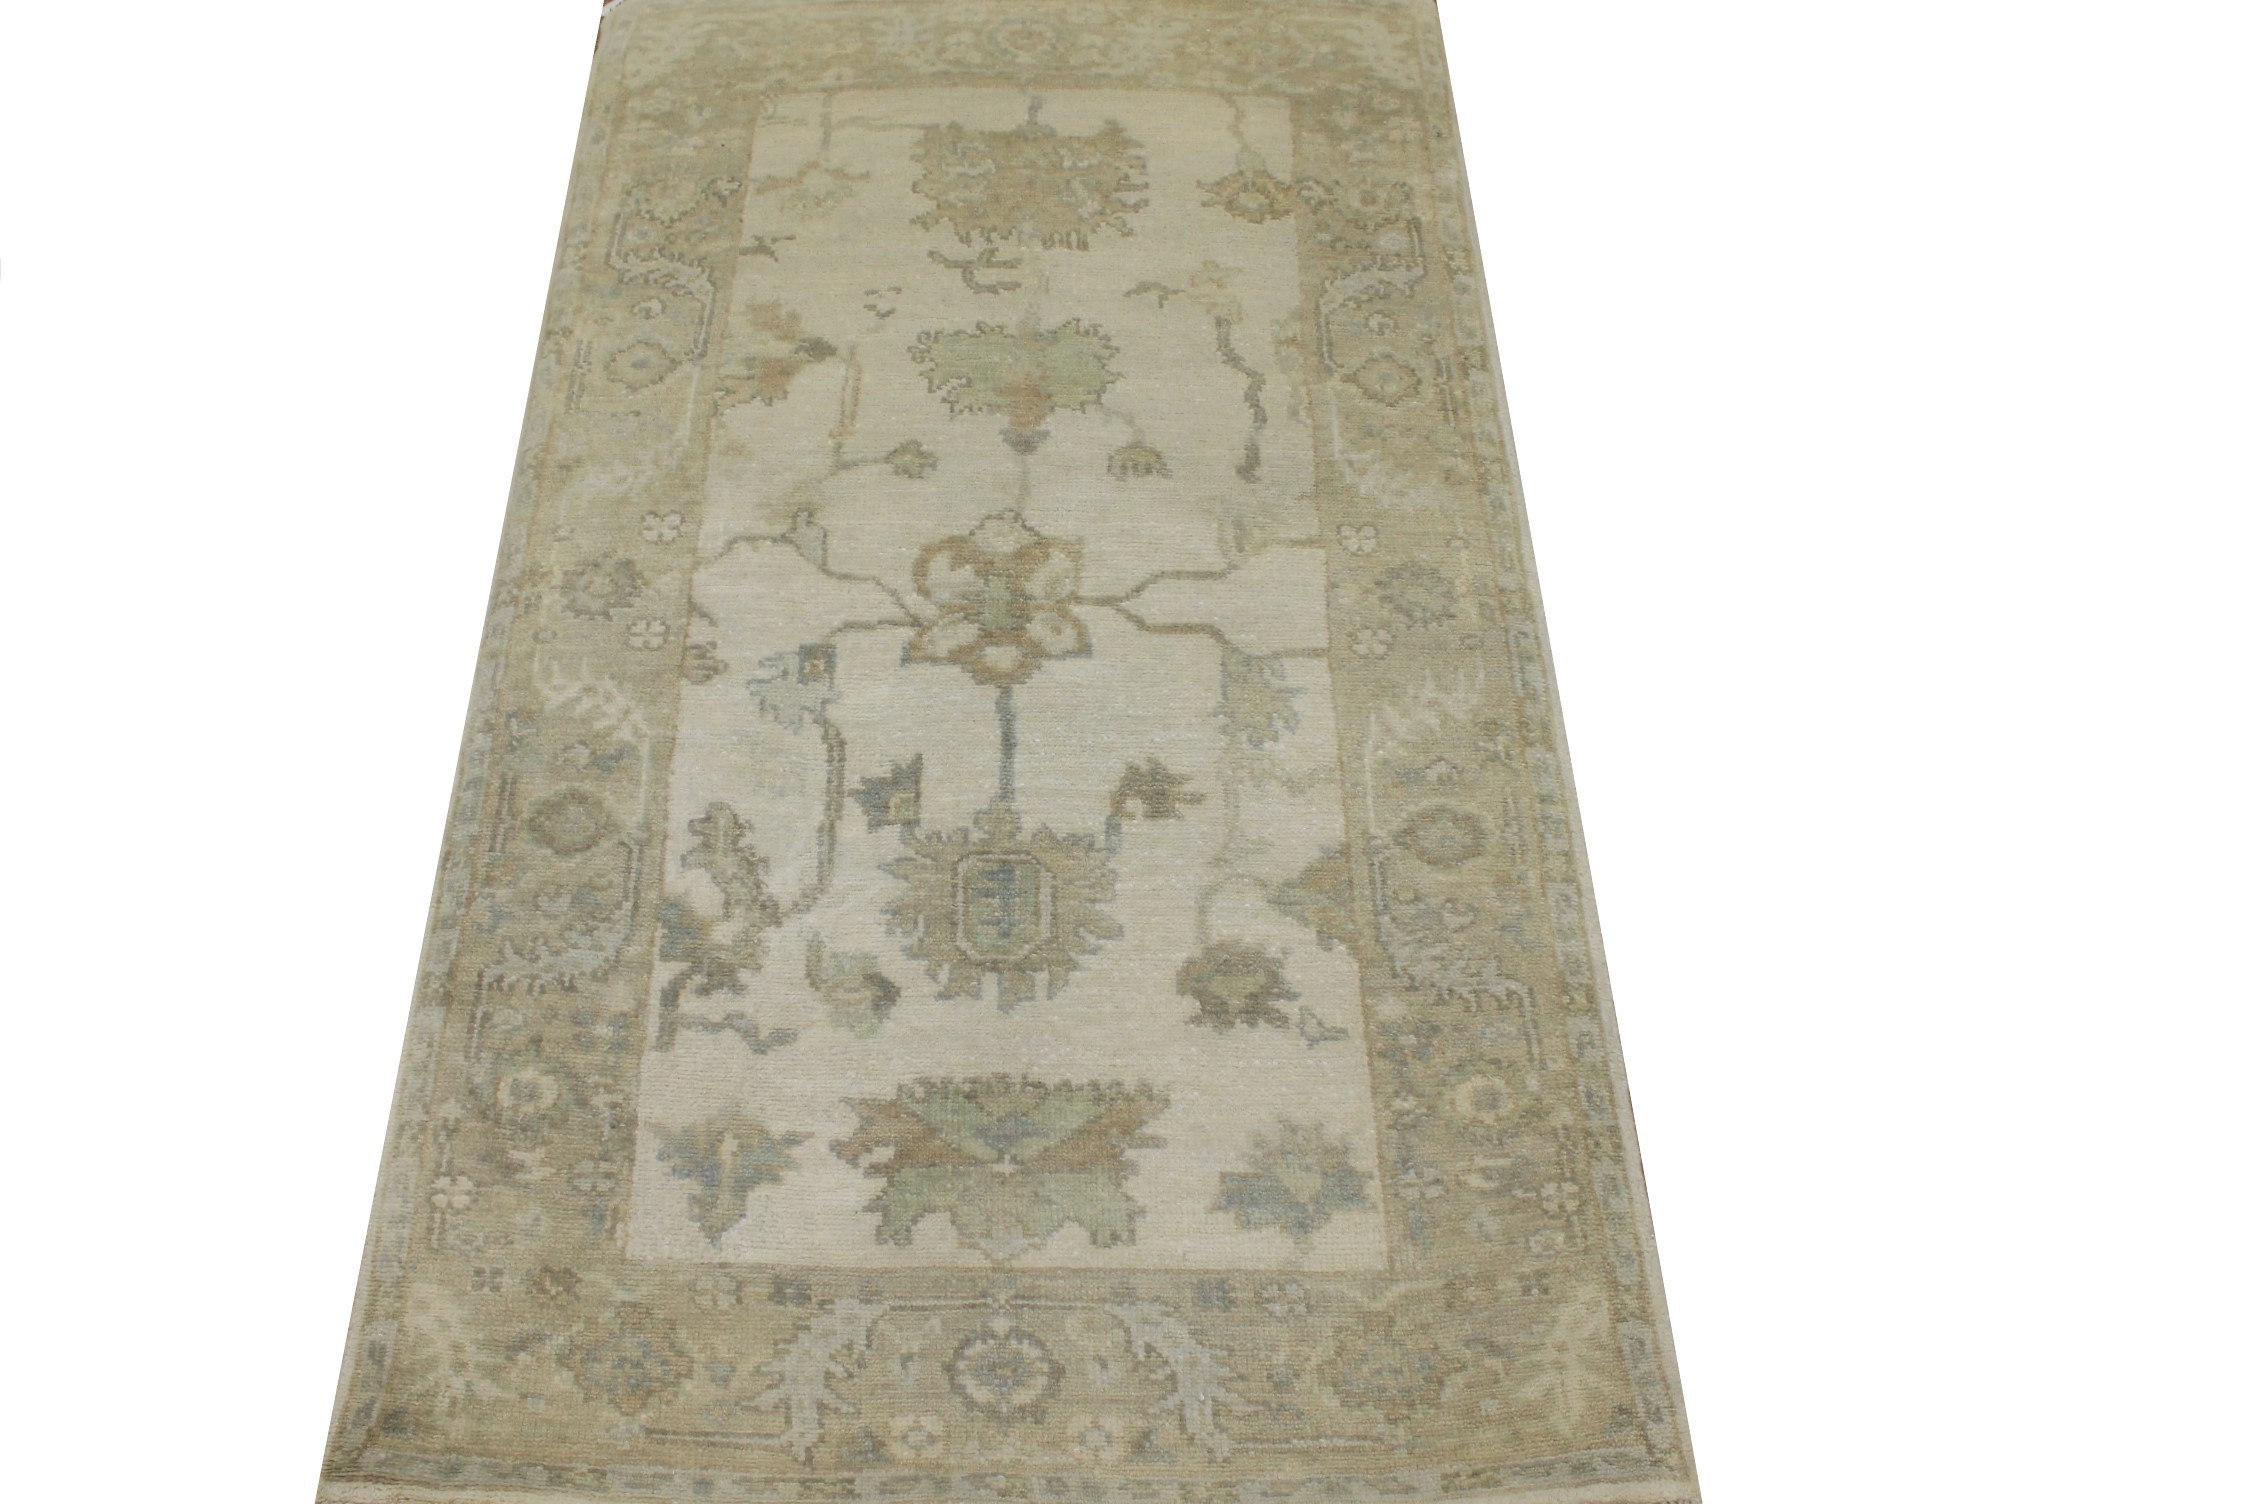 3x5 Oushak Hand Knotted Wool Area Rug - MR024326